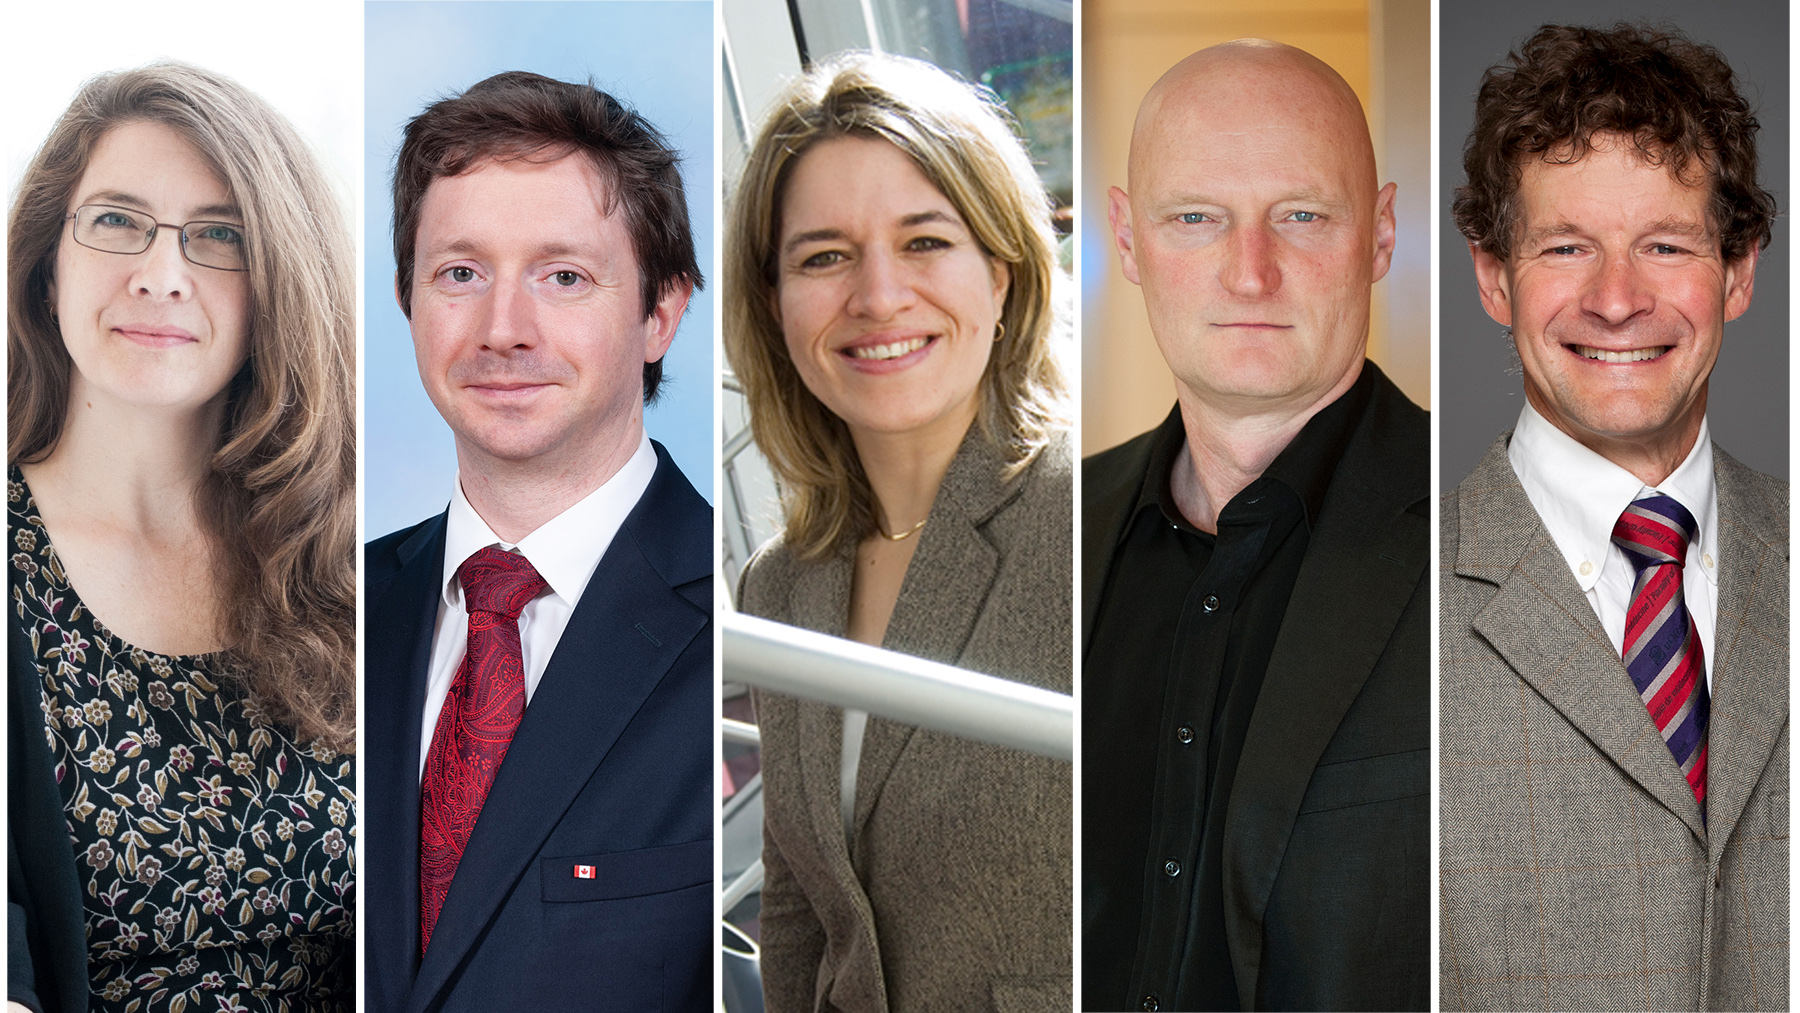 Professors Ivy Lynn Bourgeault, Paul Daly, Karin Hinzer, Michael Williams and Julian Little